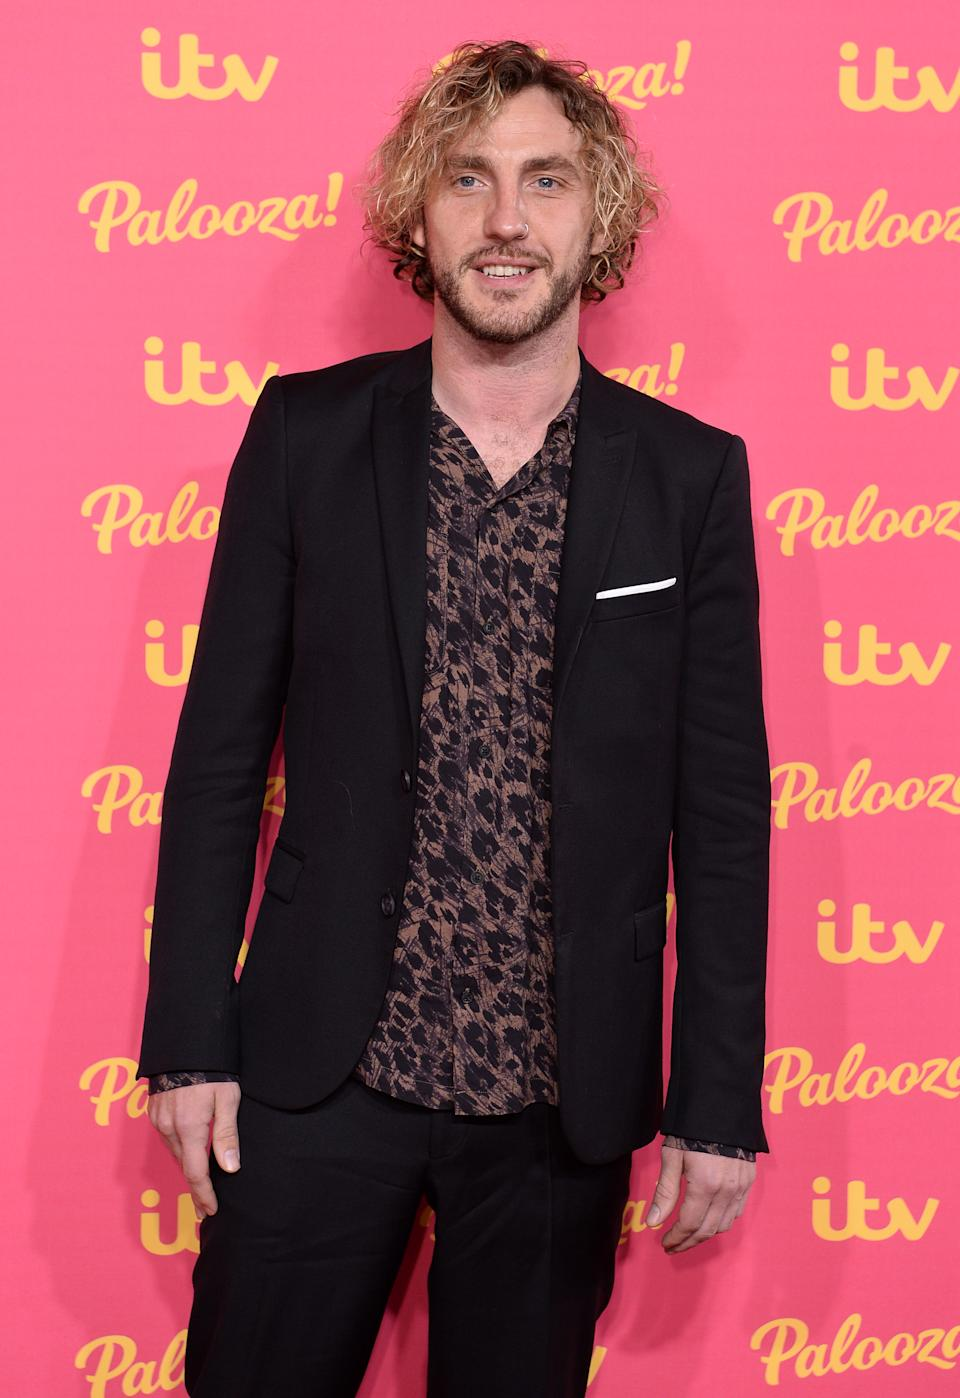 Seann Walsh attends the ITV Palooza 2019 at the Royal Festival Hall on November 12, 2019 in London, England. (Photo by Jeff Spicer/Getty Images)